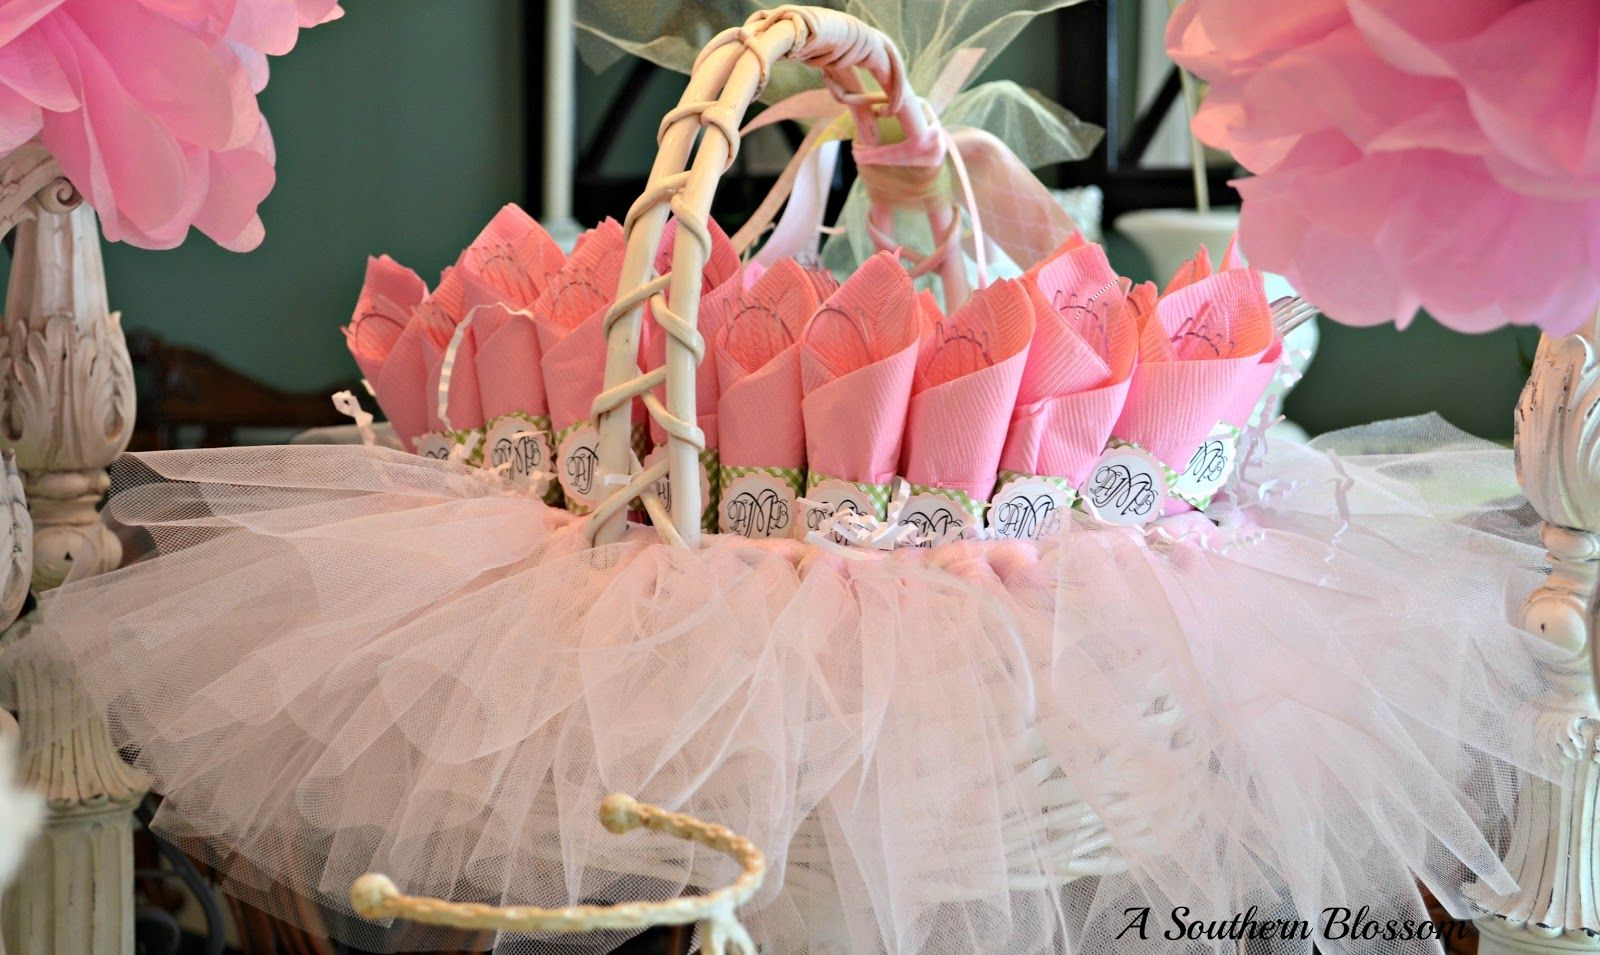 A Southern Blossom Baby Shower Princess Tutu Baby Shower